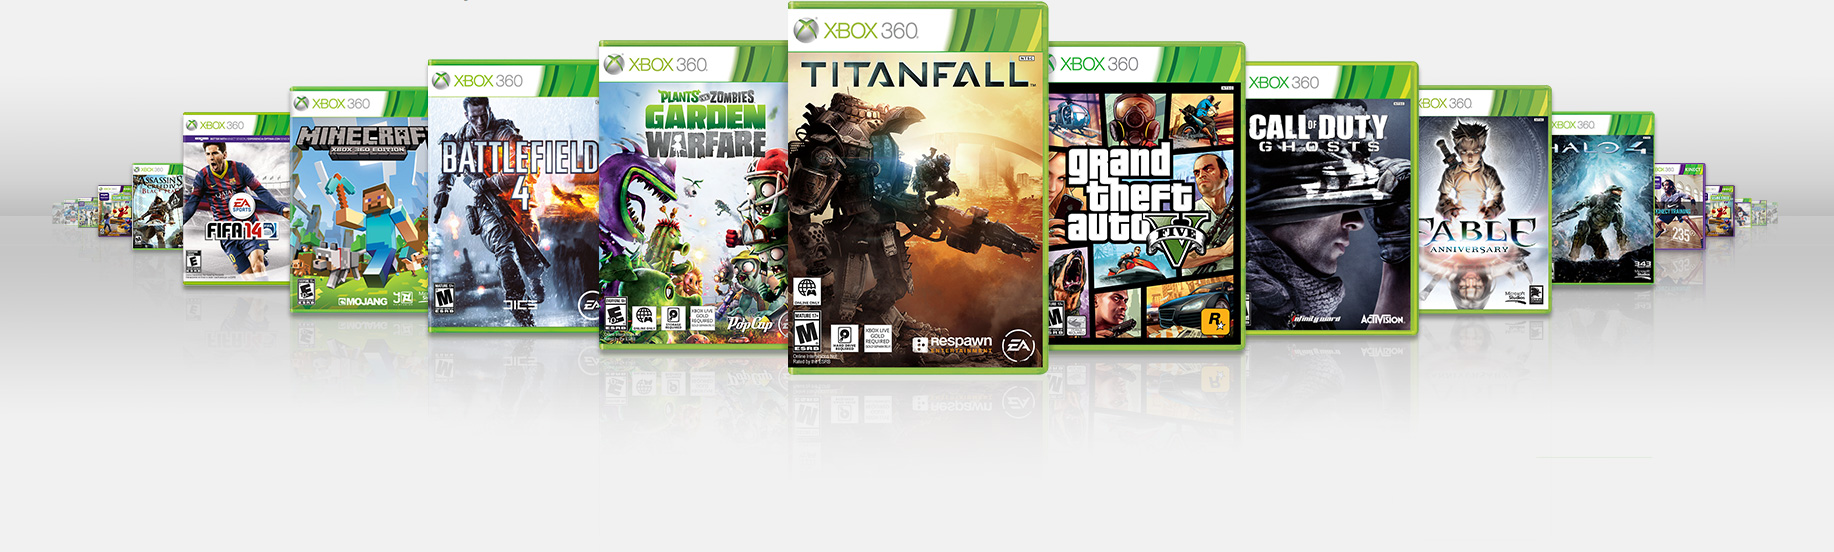 Xbox 360 | Official Site